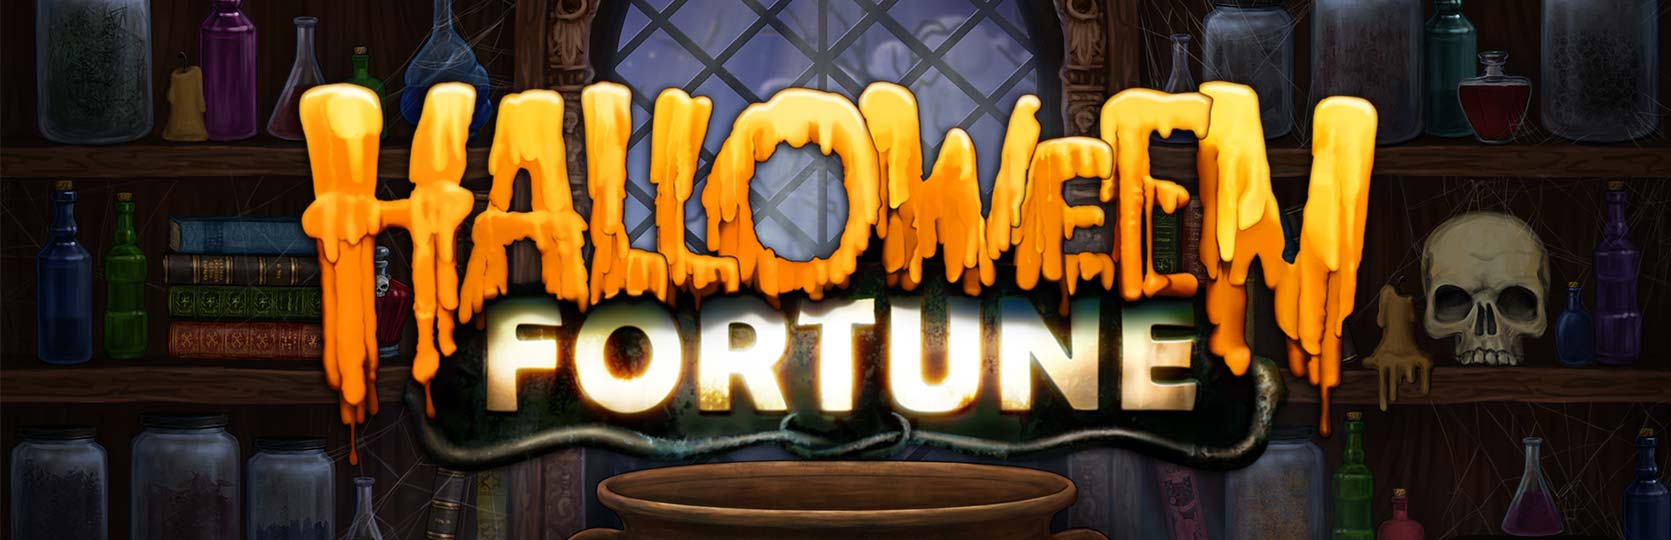 Oddsking Casino Banners Halloween Fortune